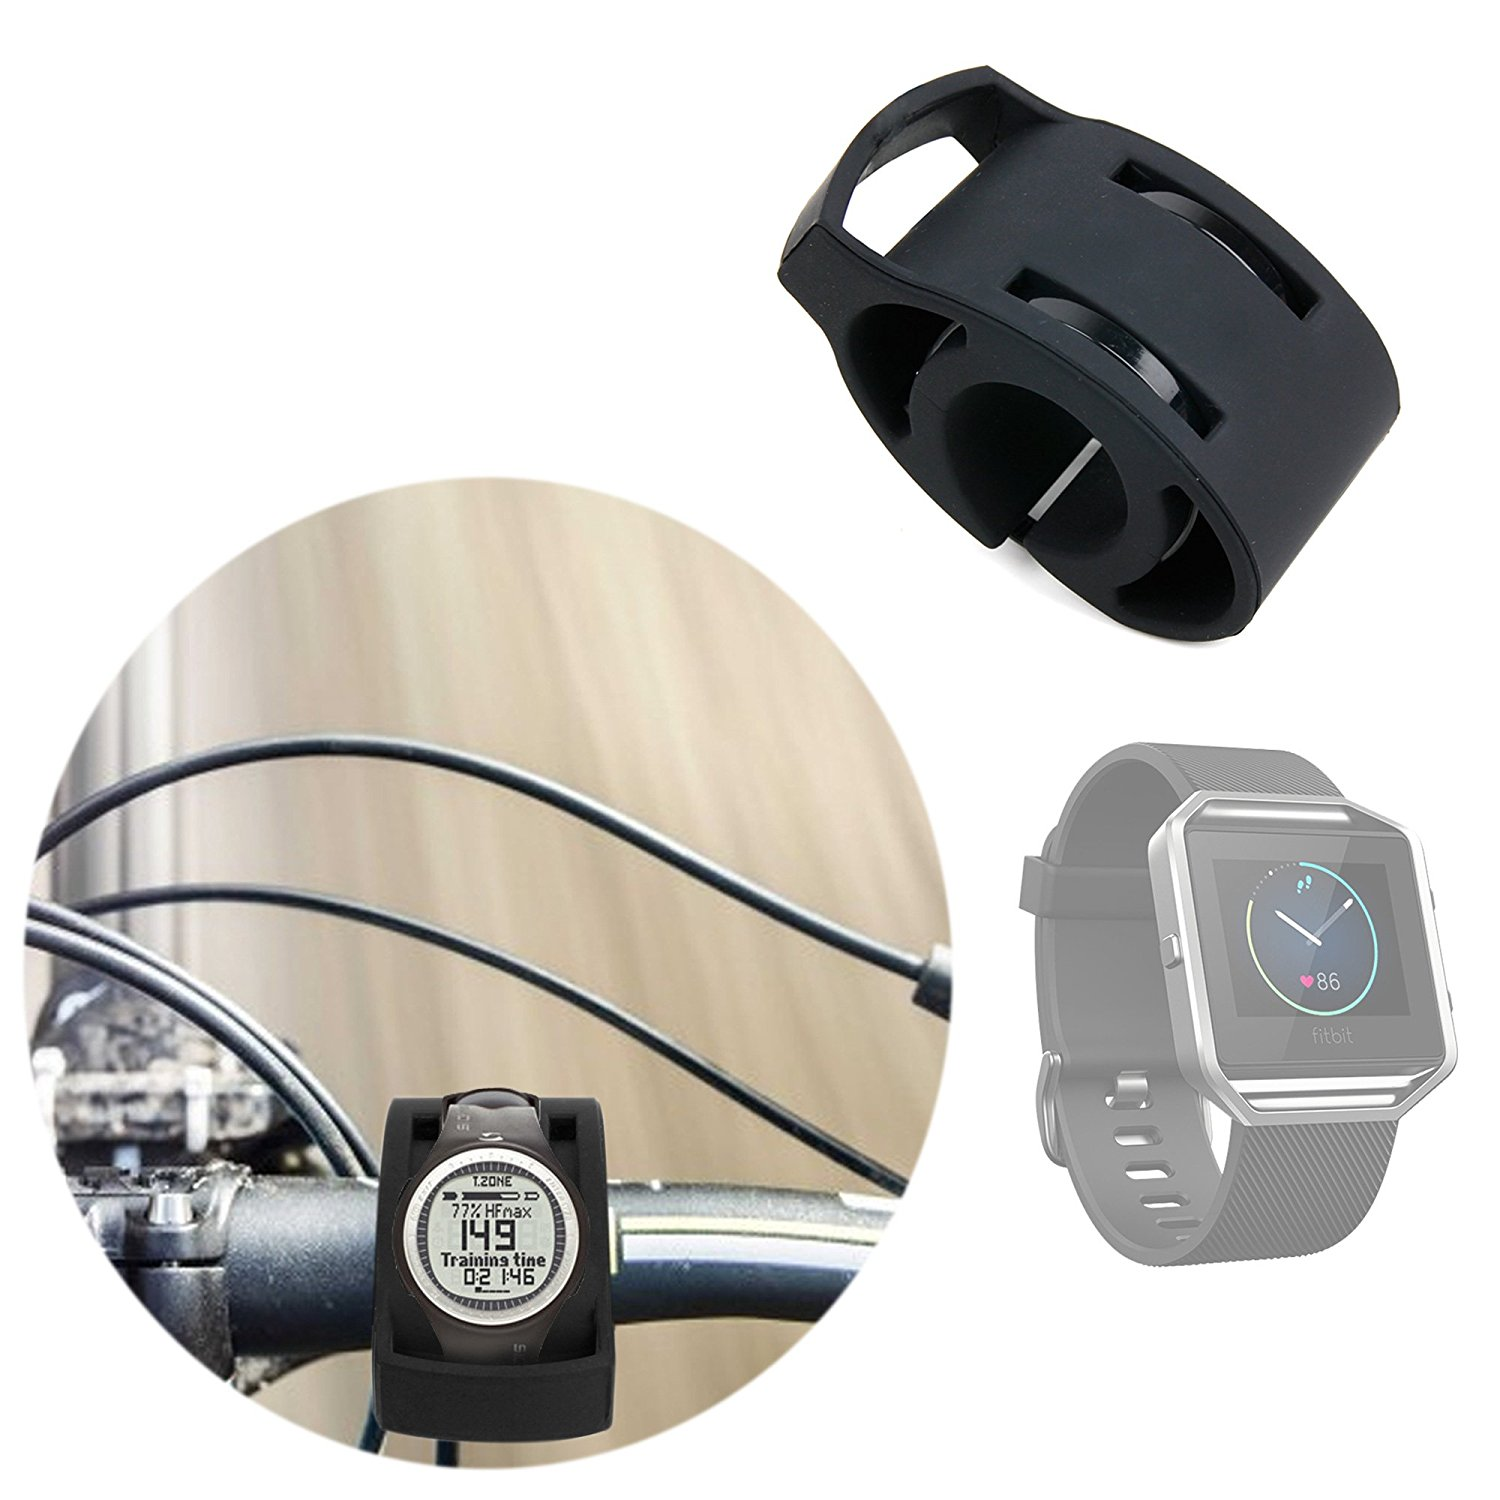 DURAGADGET Black Bicycle Handlebar Mount Kit for NEW Fitbit Blaze Smartwatch - Secured with Strong Cable Ties